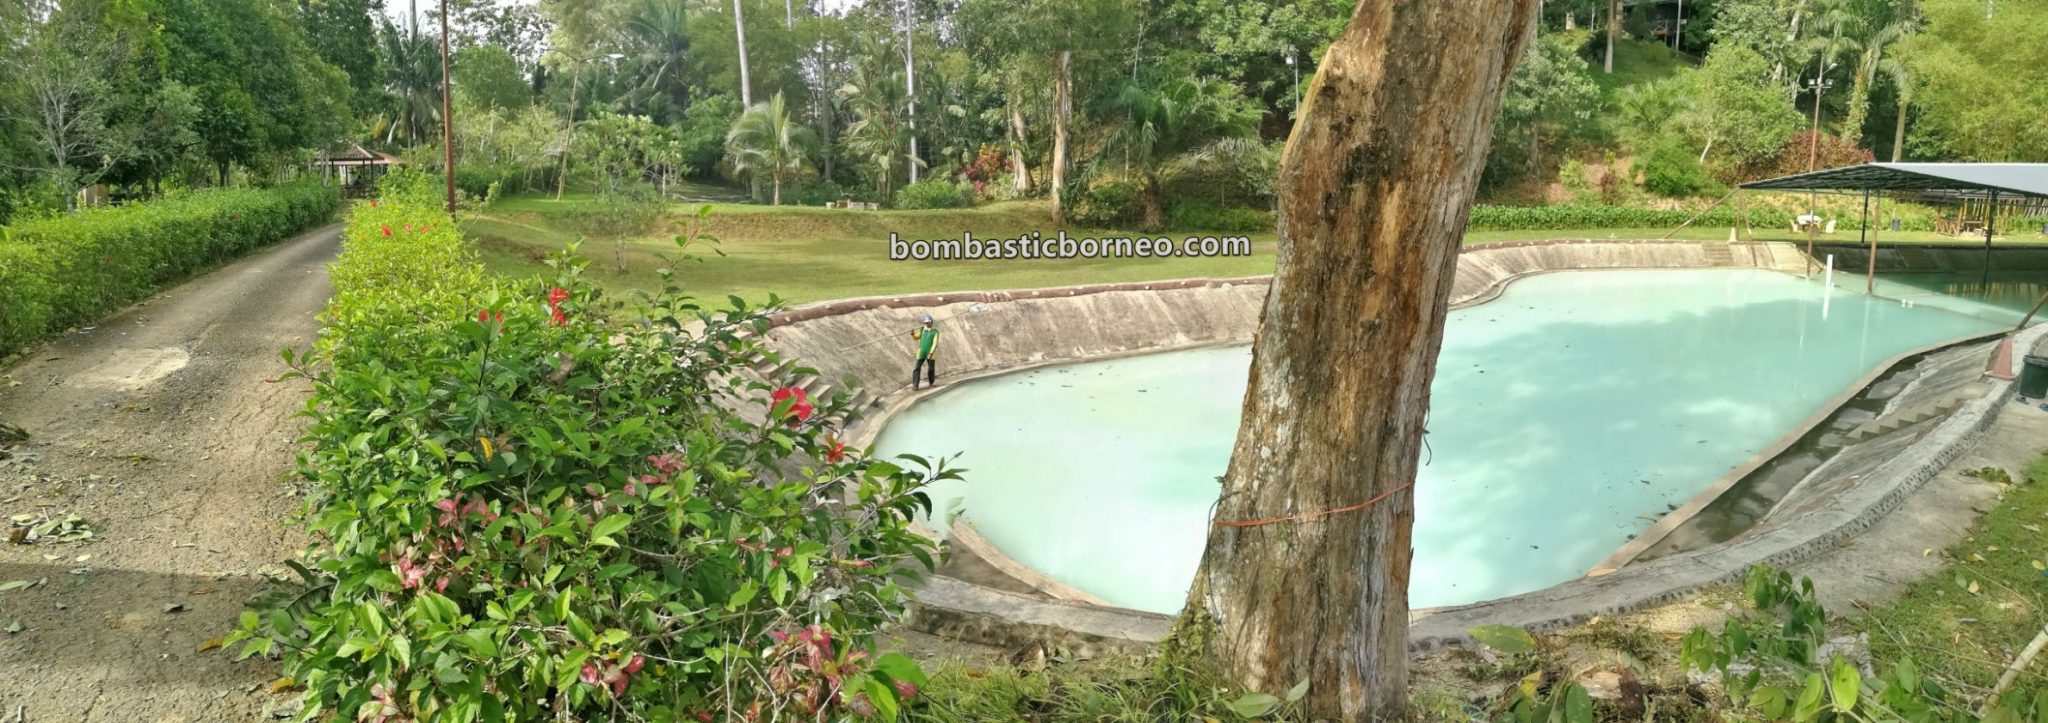 Sankina Hotspring Park, healthy, nature, outdoor, recreational, water park, destination, family holiday, Sabah, Malaysia, Tawau, Tourism, tourist attraction, Travel guide, Trans Borneo,